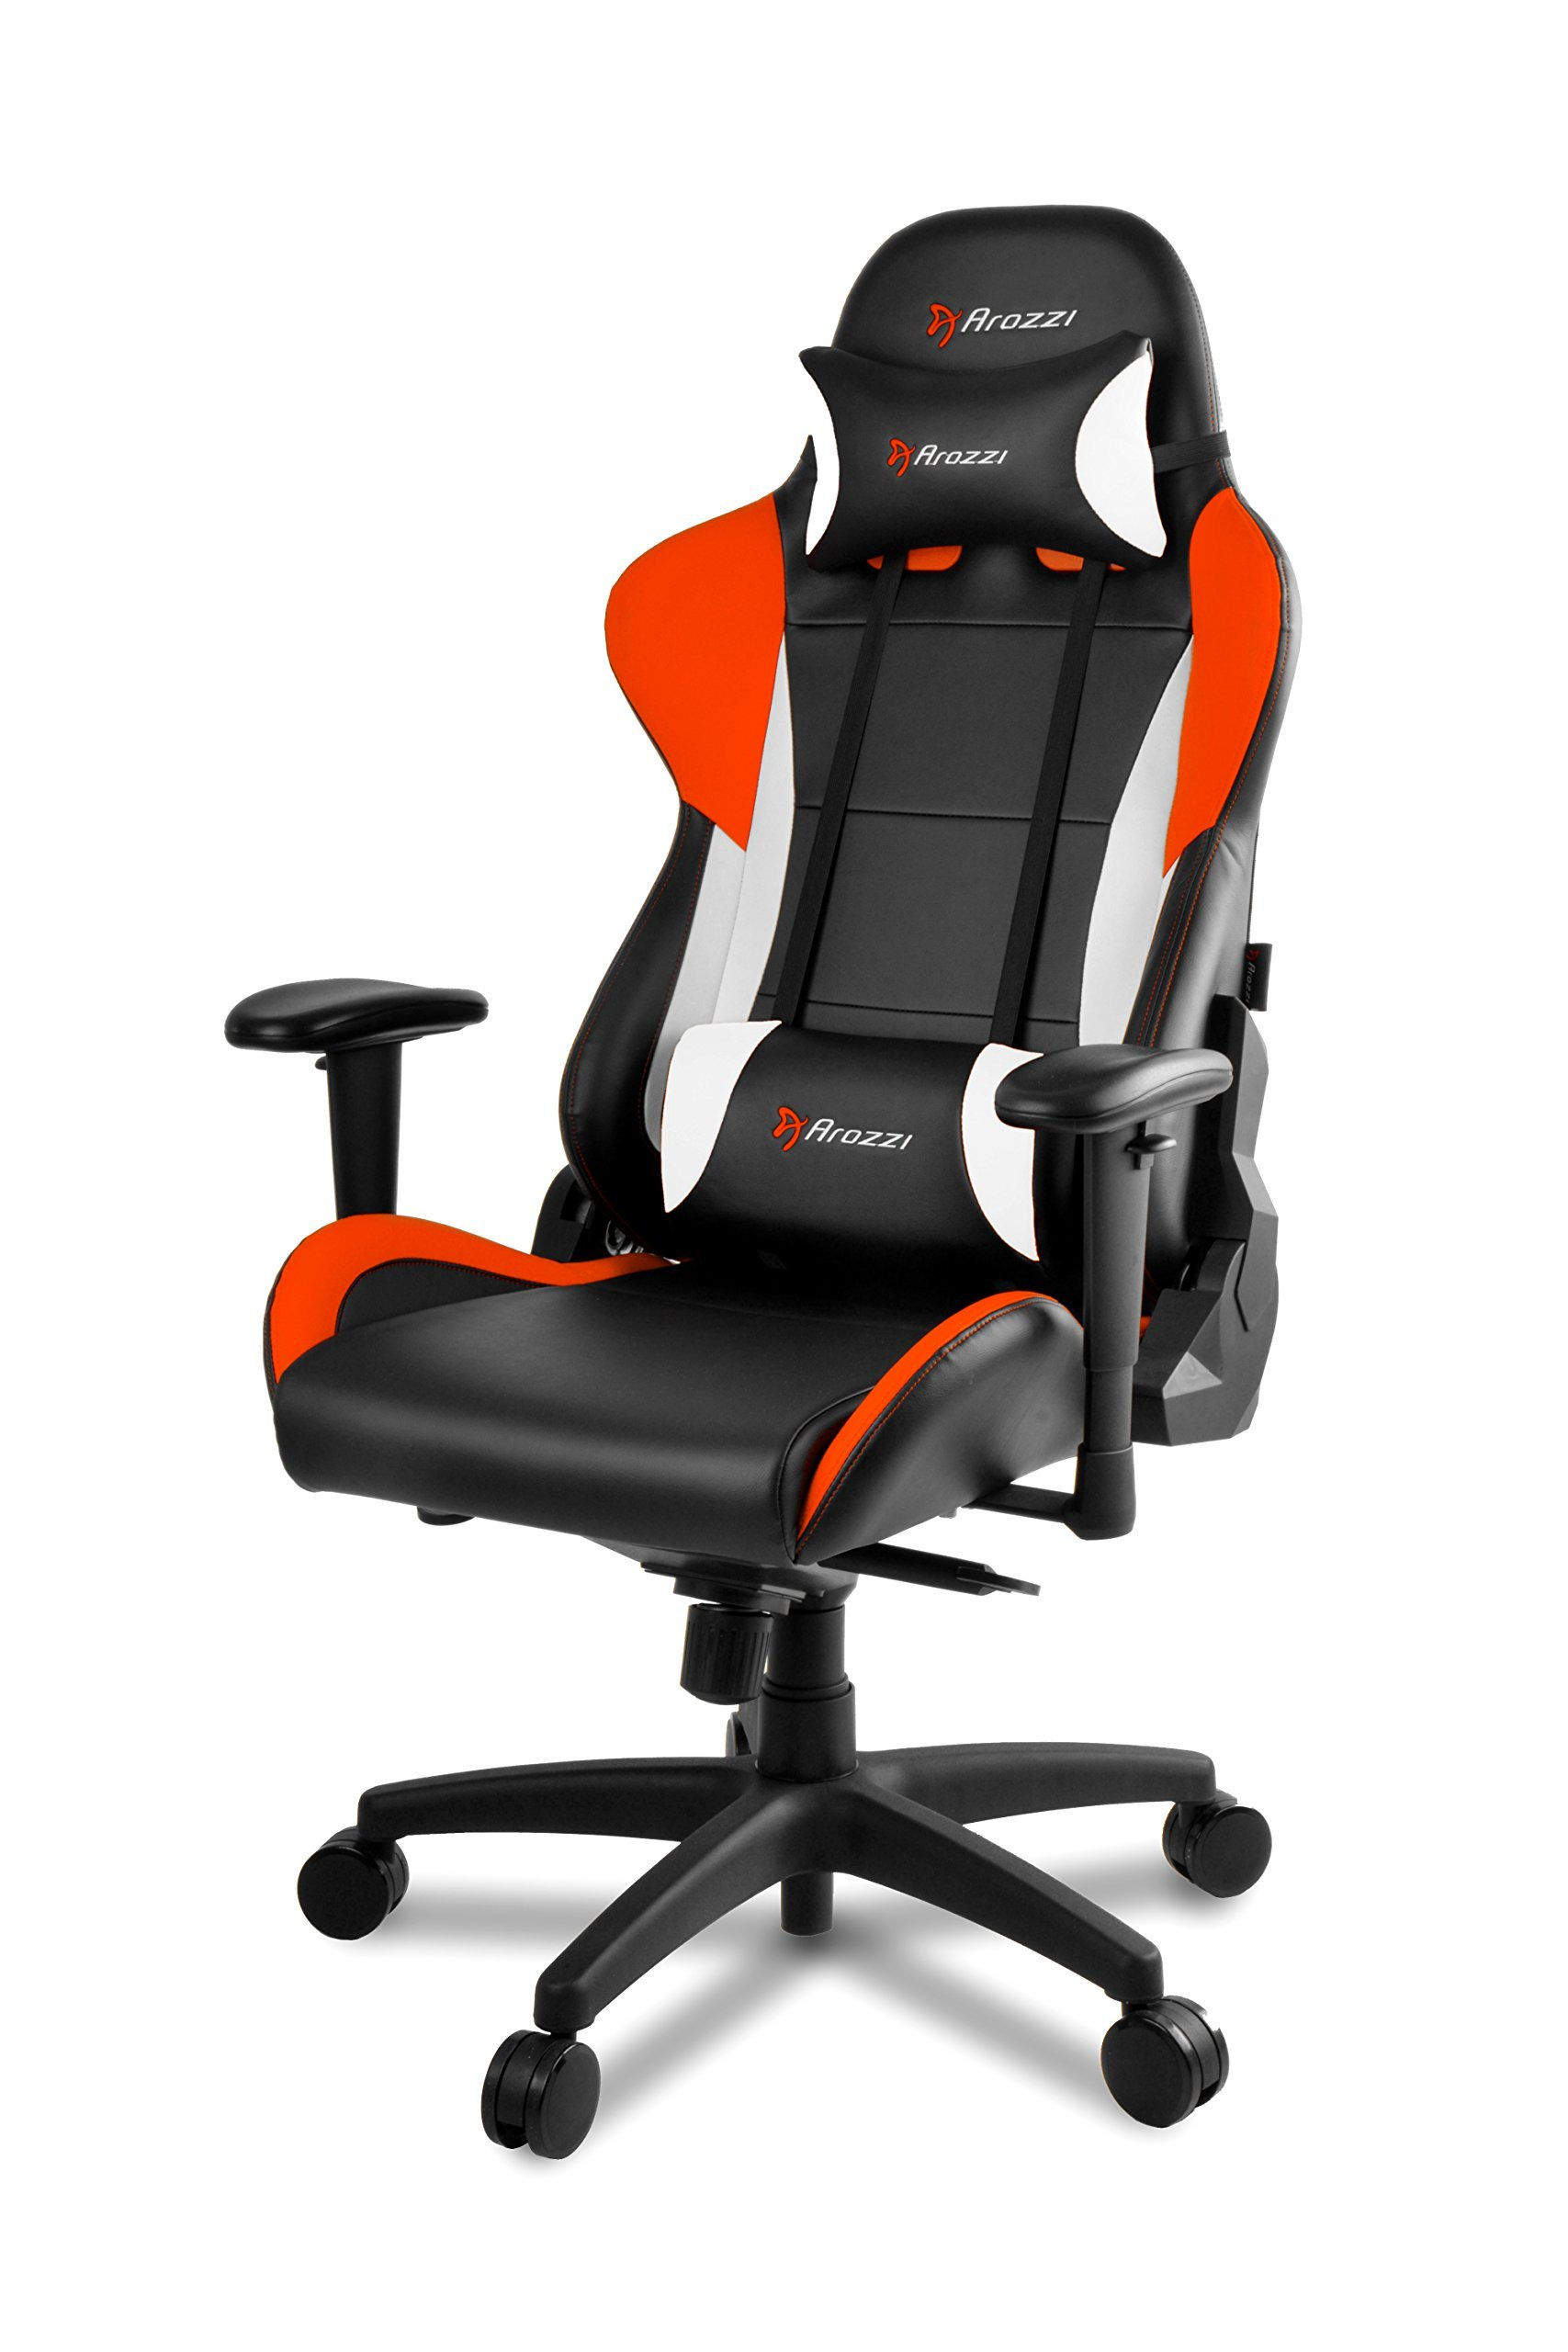 Verona Pro V2 Premium Racing Style Gaming Chair with High Backrest, Recliner, Swivel, Tilt, Rocker & Seat Height Adjustment, Lumbar & Headrest Pillows Included, Orange - PC/Mac/Linux